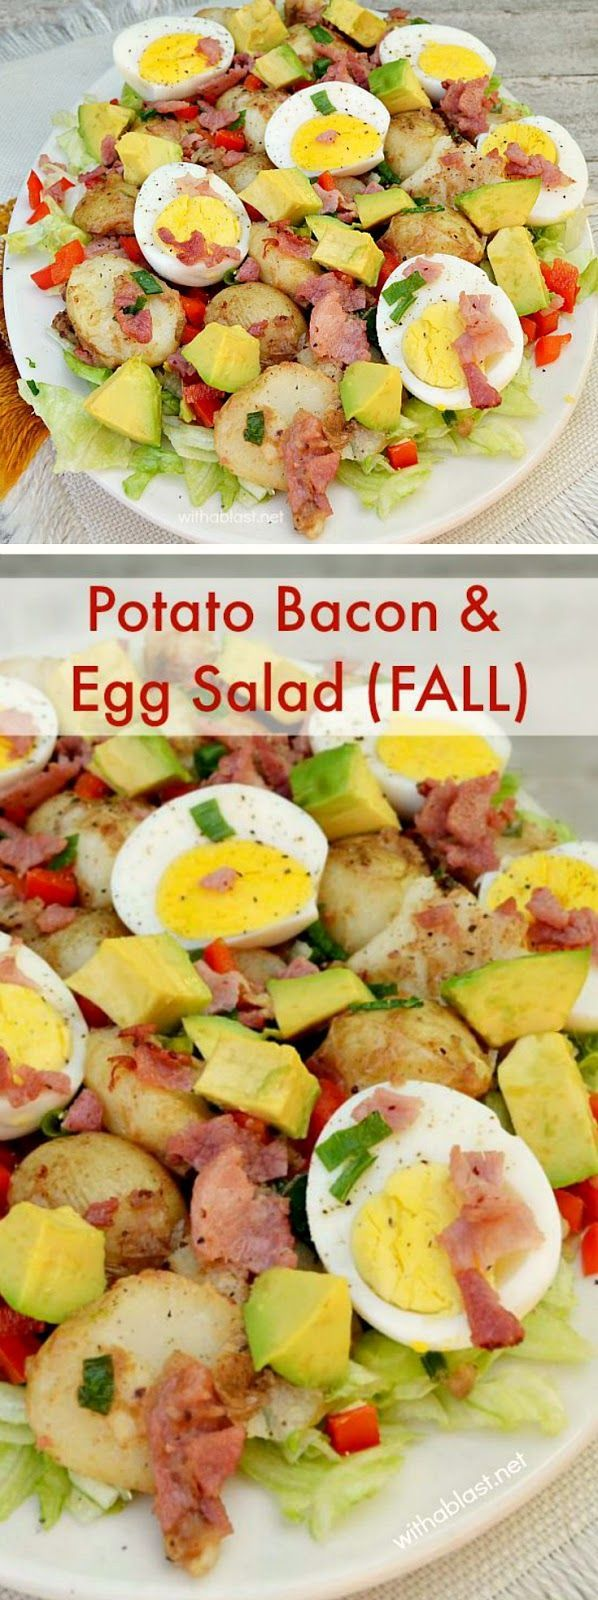 Potato Salad loaded with Bacon and Egg, serve slightly warm and perfect as a light dinner